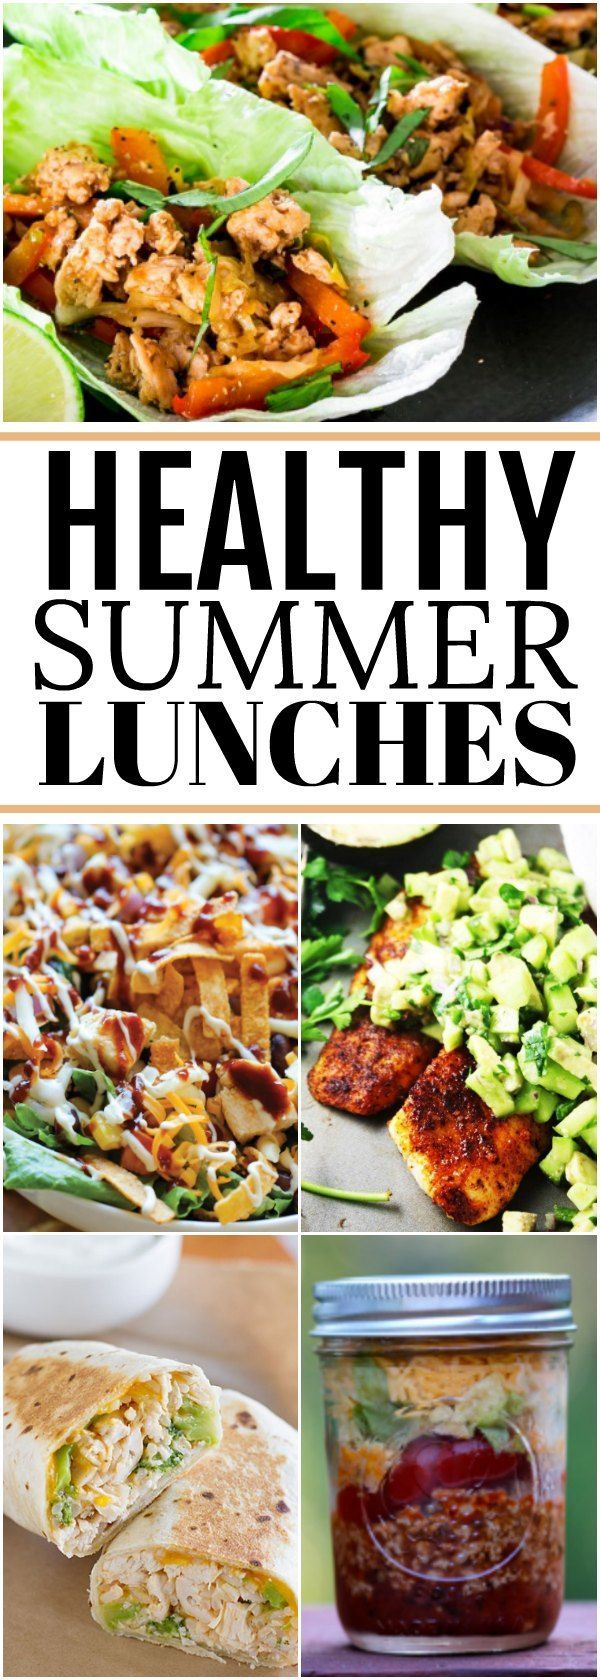 Take a look at these healthy lunch recipes. You can make these summer lunch recipes quickly and easily. Even better, they are budget friendly.